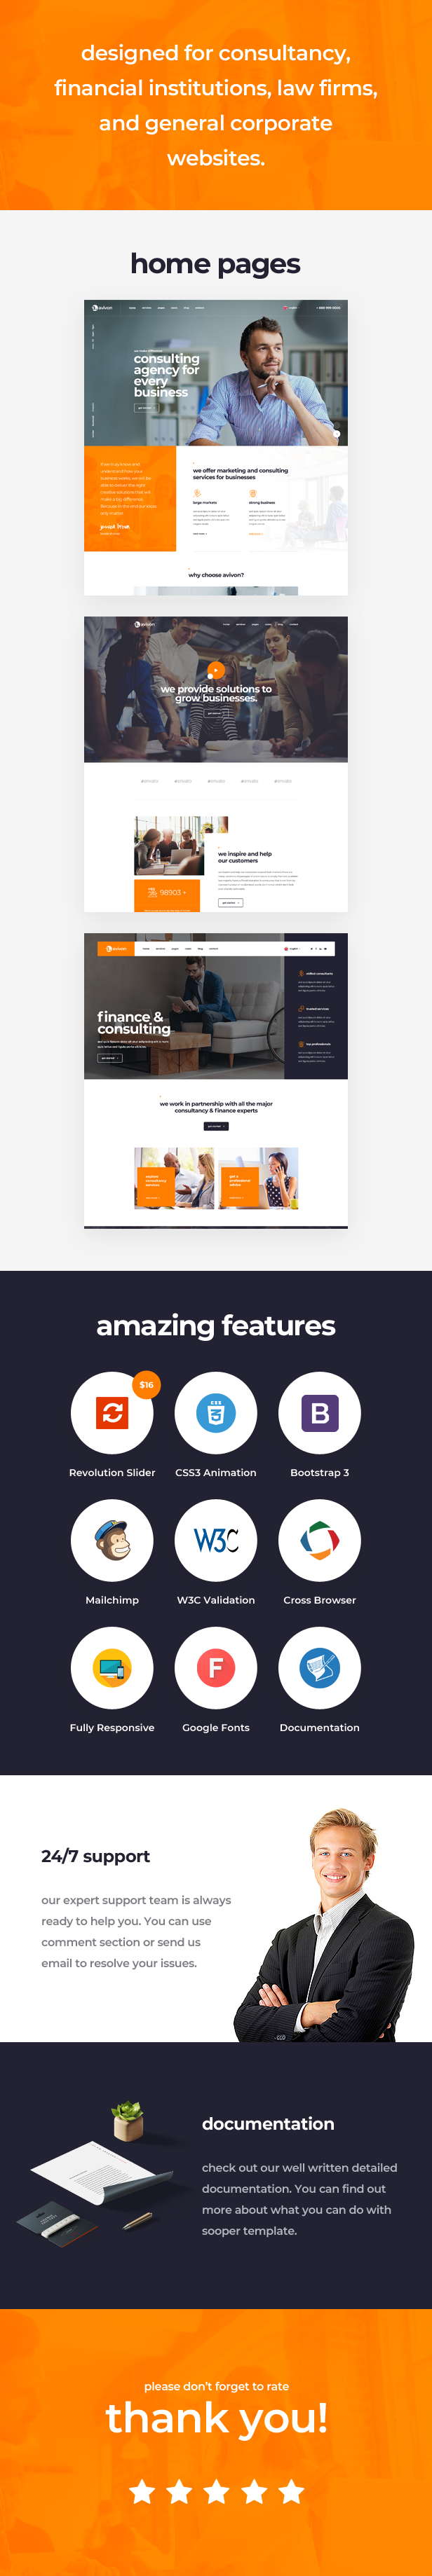 Avivon - Pure Business Consulting & Finance HTML5 Template - 1